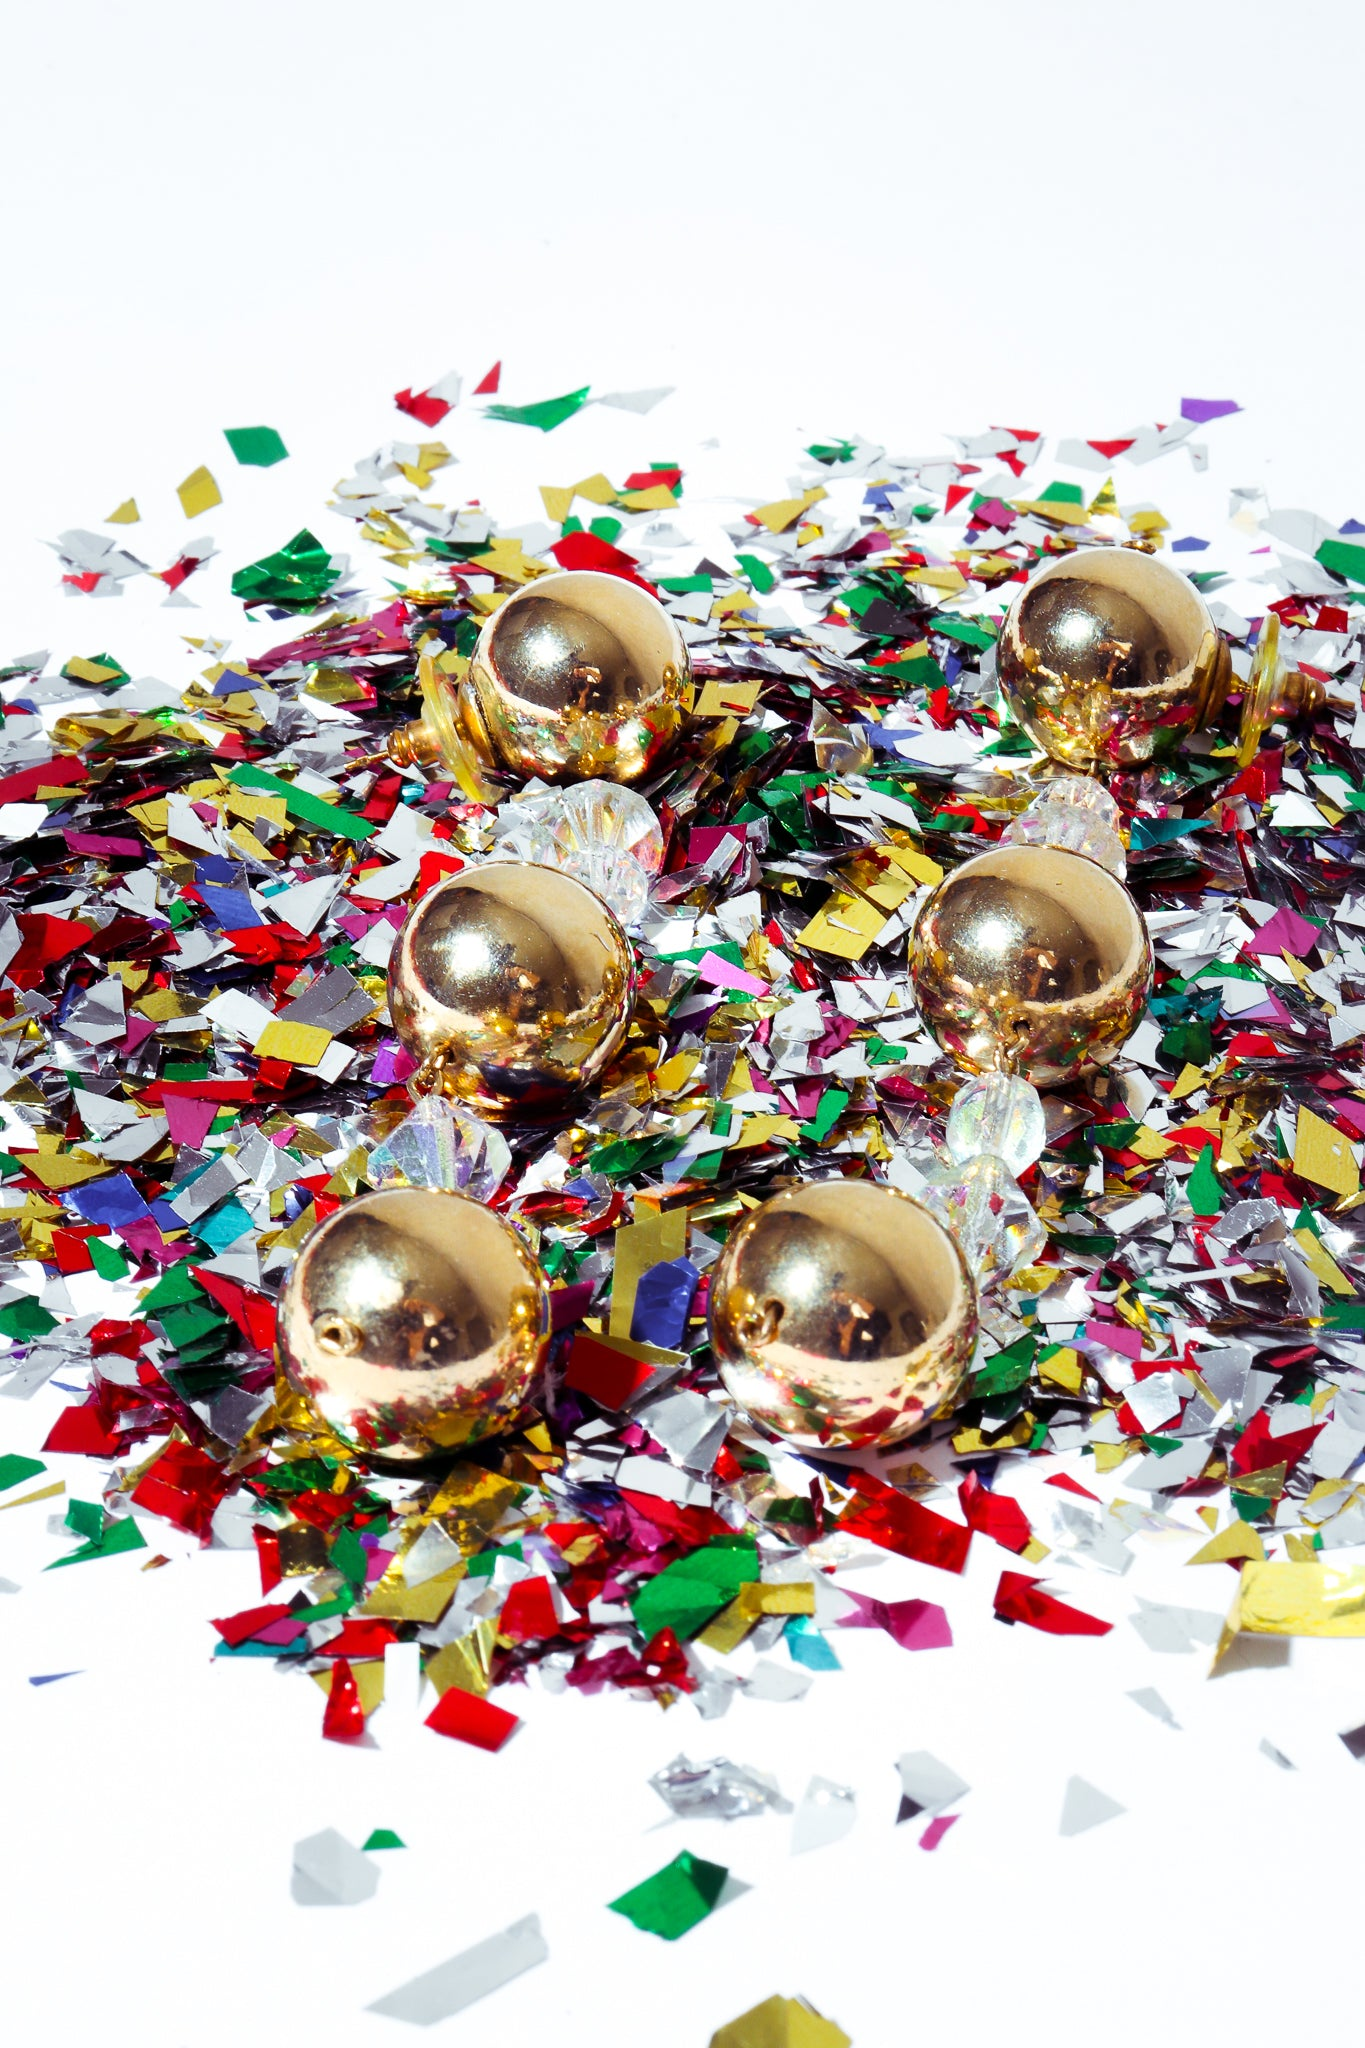 Recess Dresscode New Ear's Sparklers Unsigned Shiny Gold Ball Drop Earrings with confetti